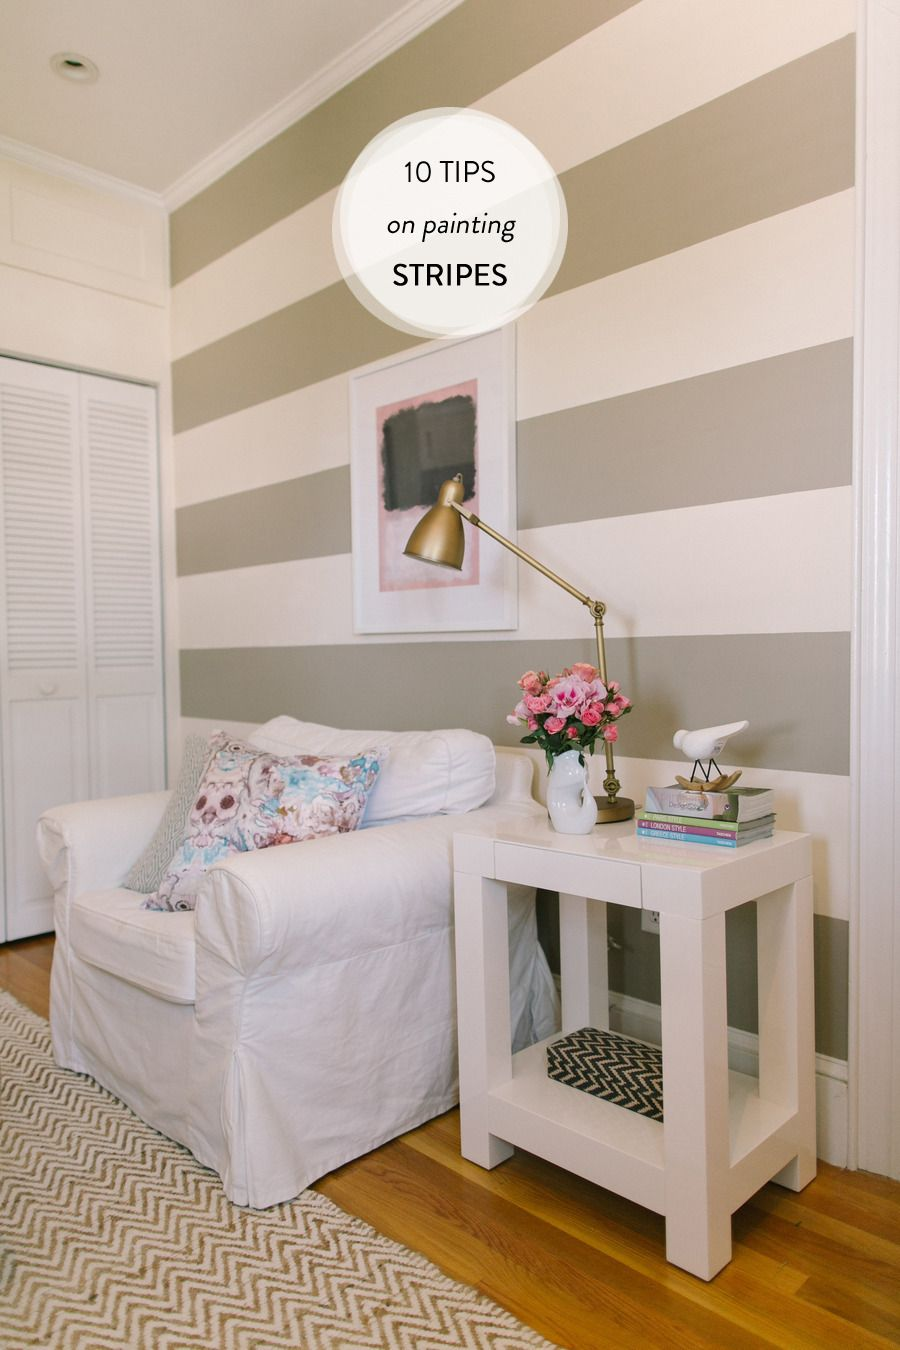 Ten Tips On Painting A Striped Wall Striped Walls Striped Accent Walls Home